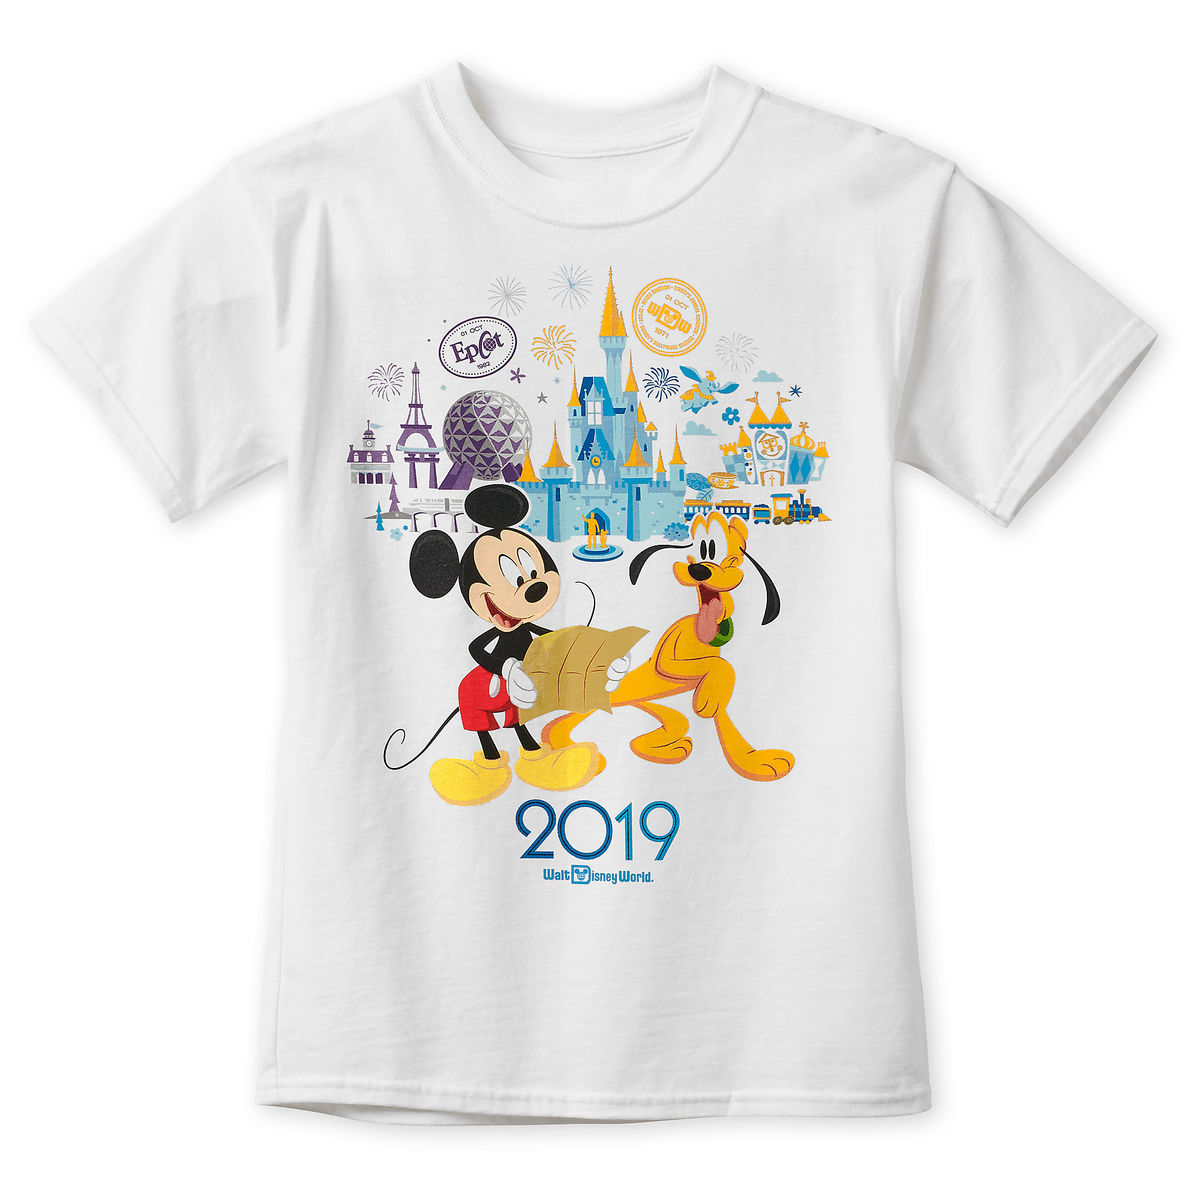 Disney Child Shirt - 2019 Walt Disney World - Mickey and Pluto